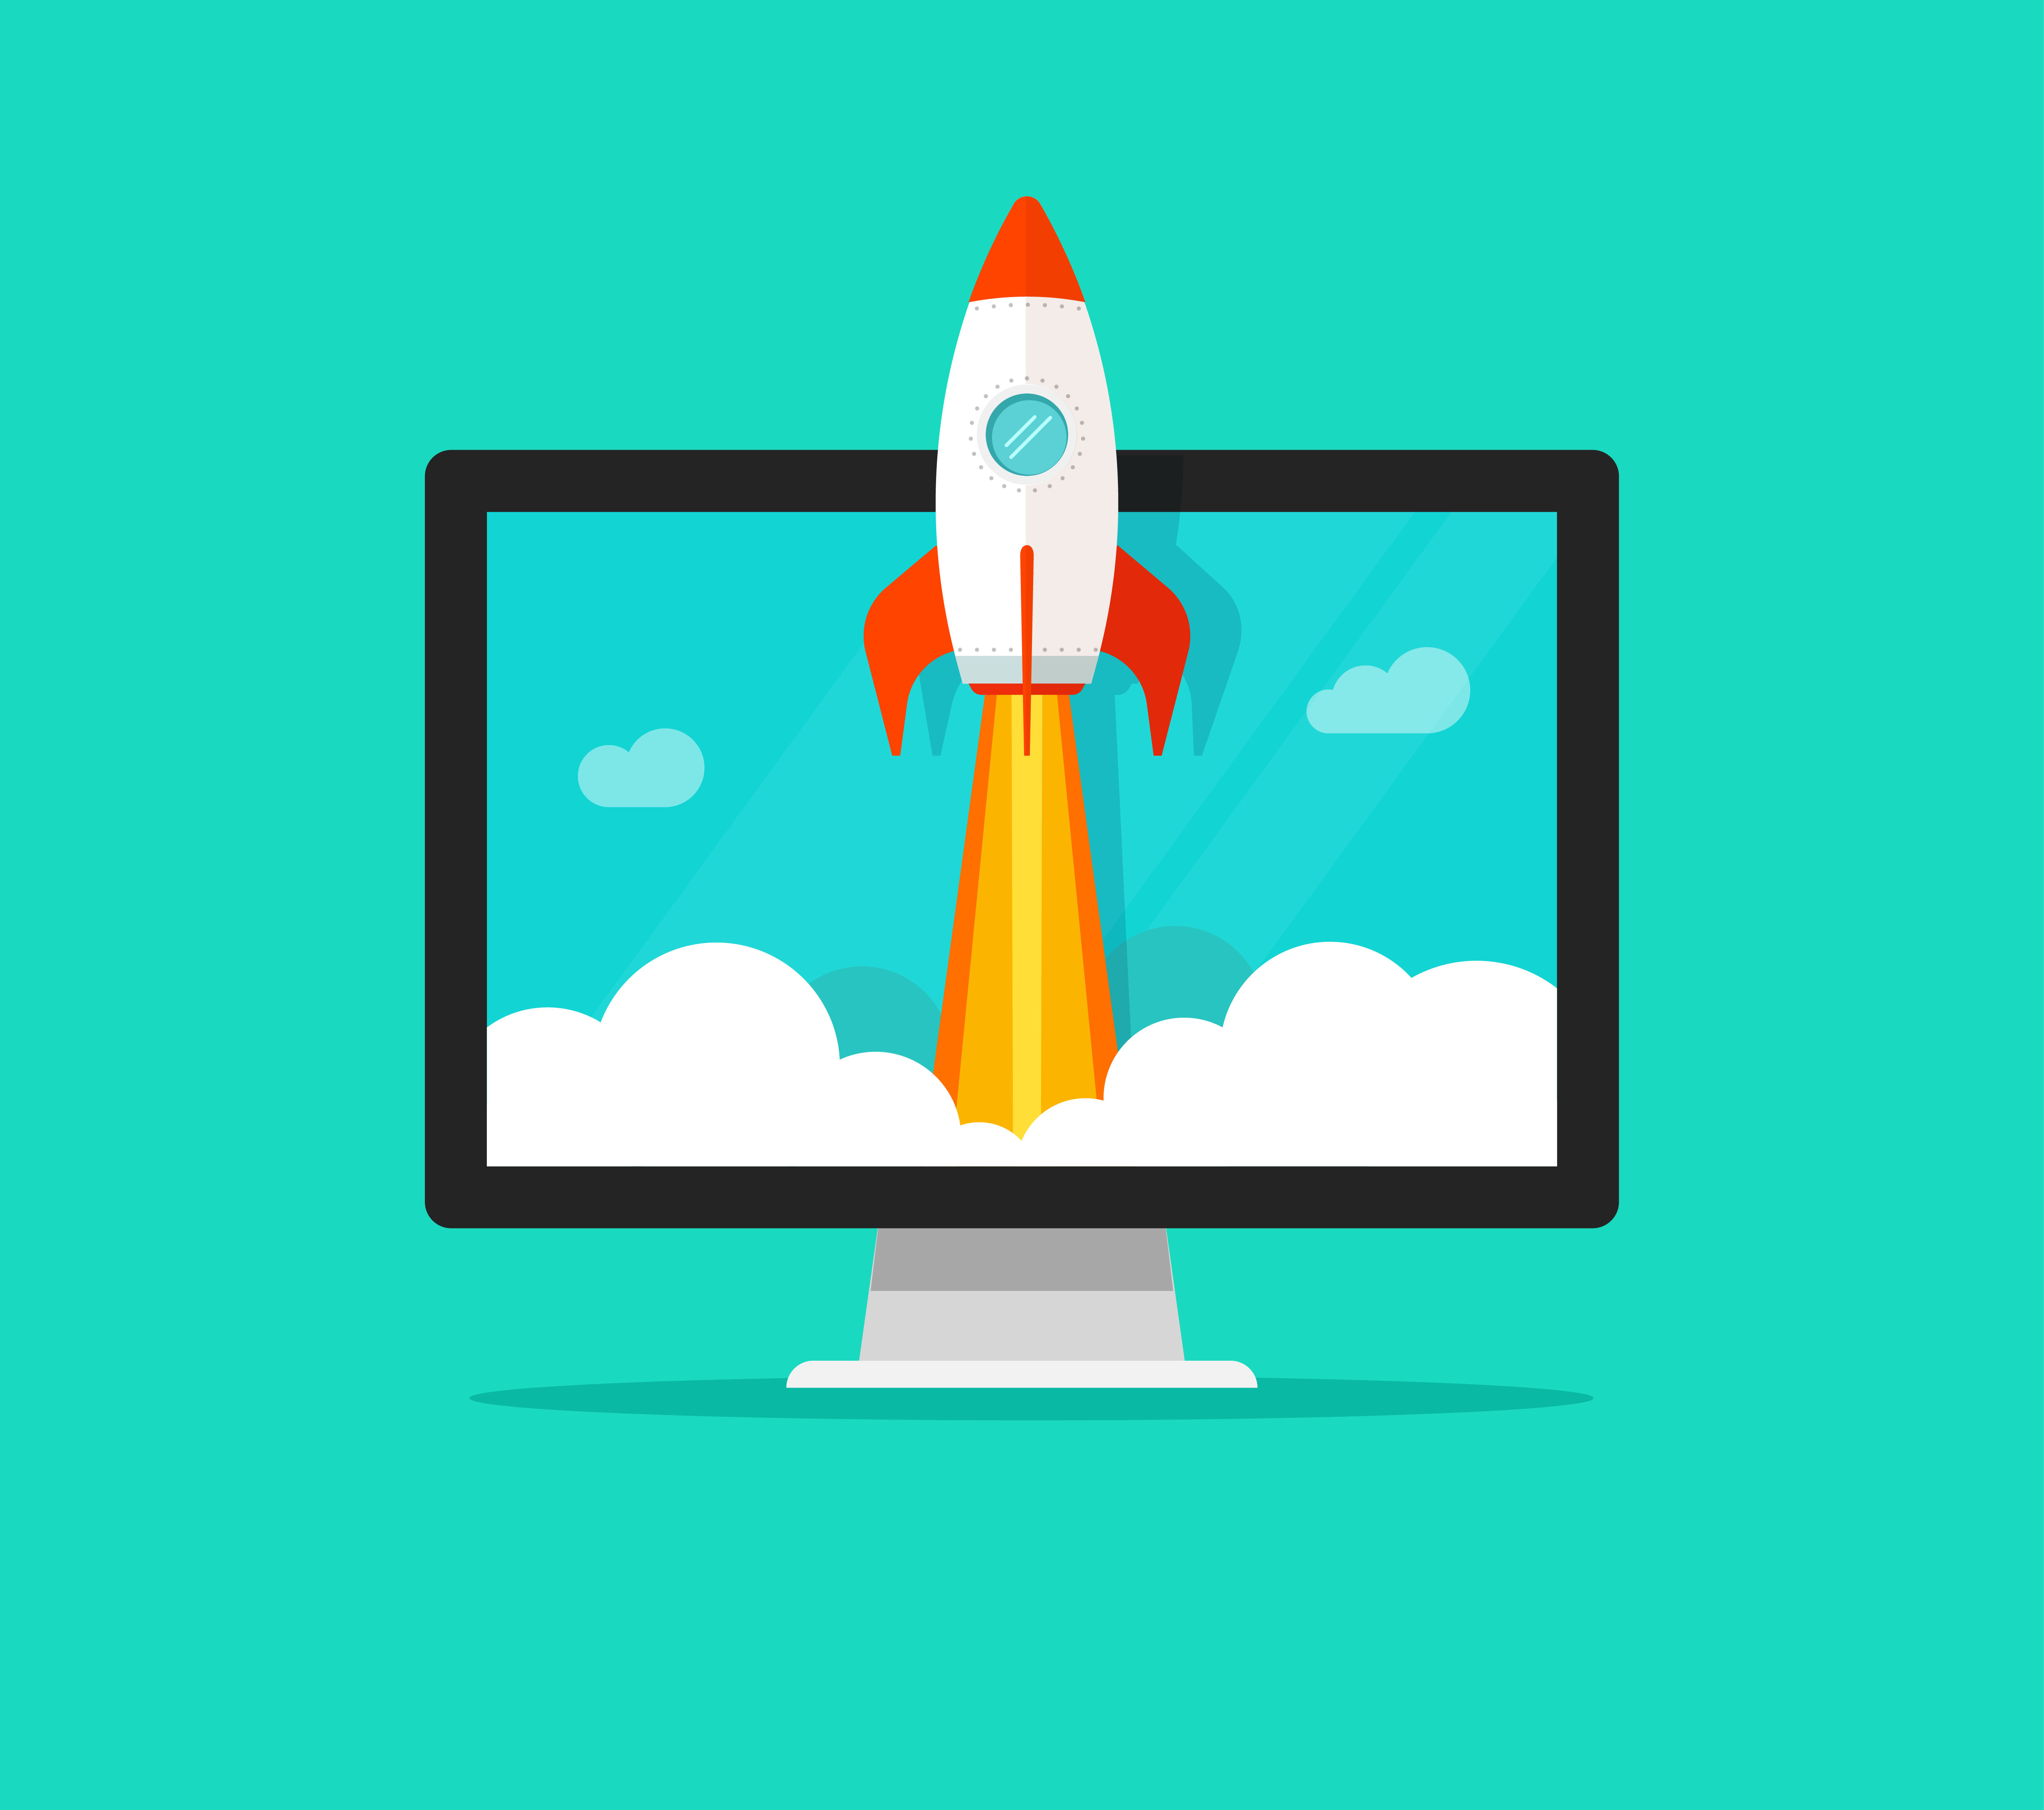 How to launch a product remotely – Lessons from Lockdown